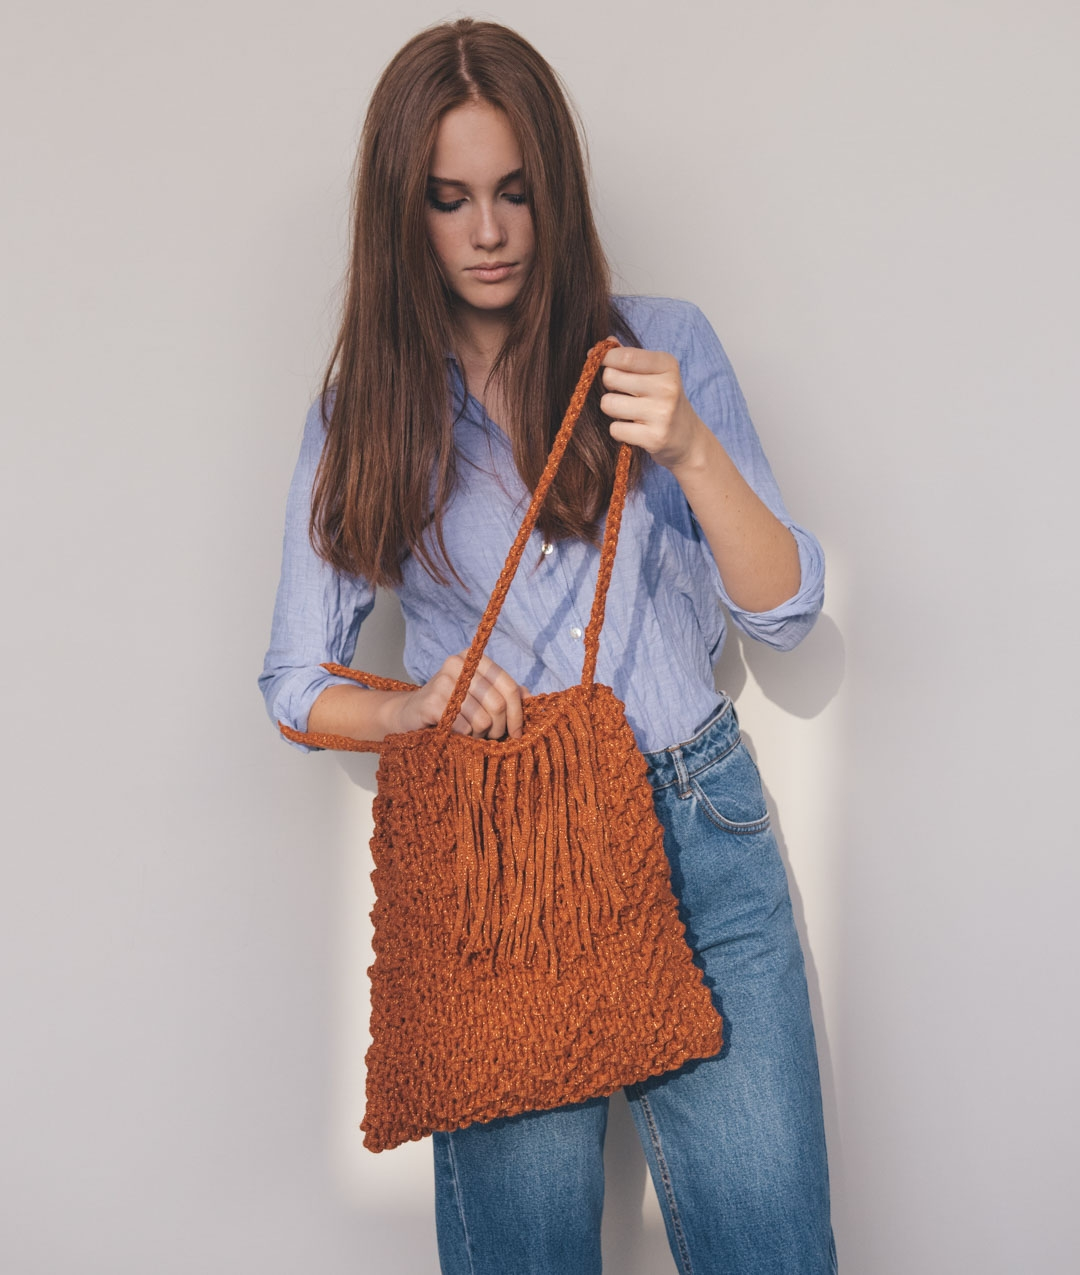 Bags - Wool - GINGERBREAD SHOPPER - 1